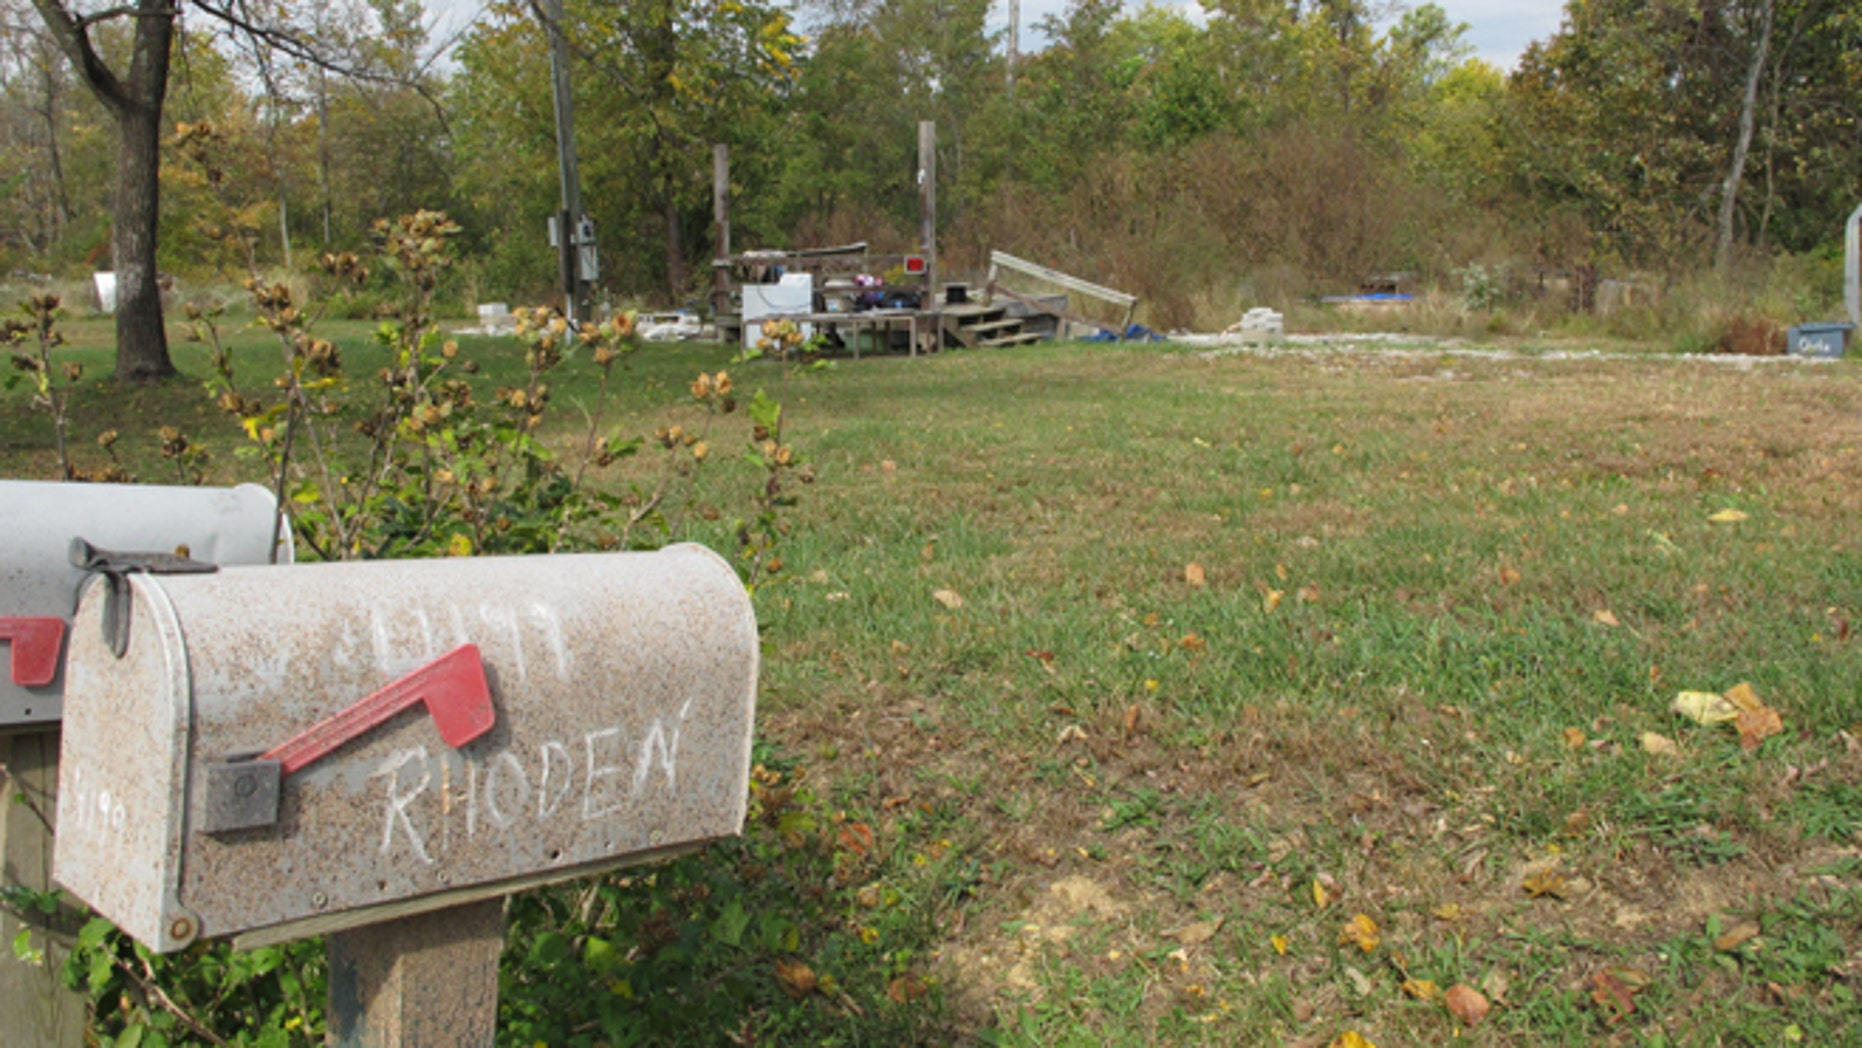 """In this Tuesday, Oct. 18, 2016 photo, a porch is all that remains of the home on Union Hill Road after investigators removed the trailer where the bodies of Clarence """"Frankie"""" Rhoden and Hannah Gilley were found on April 22, two of eight family members found shot to death that day in a still-unsolved crime, in Piketon, Ohio. (AP Photo/Andrew Welsh-Huggins)"""